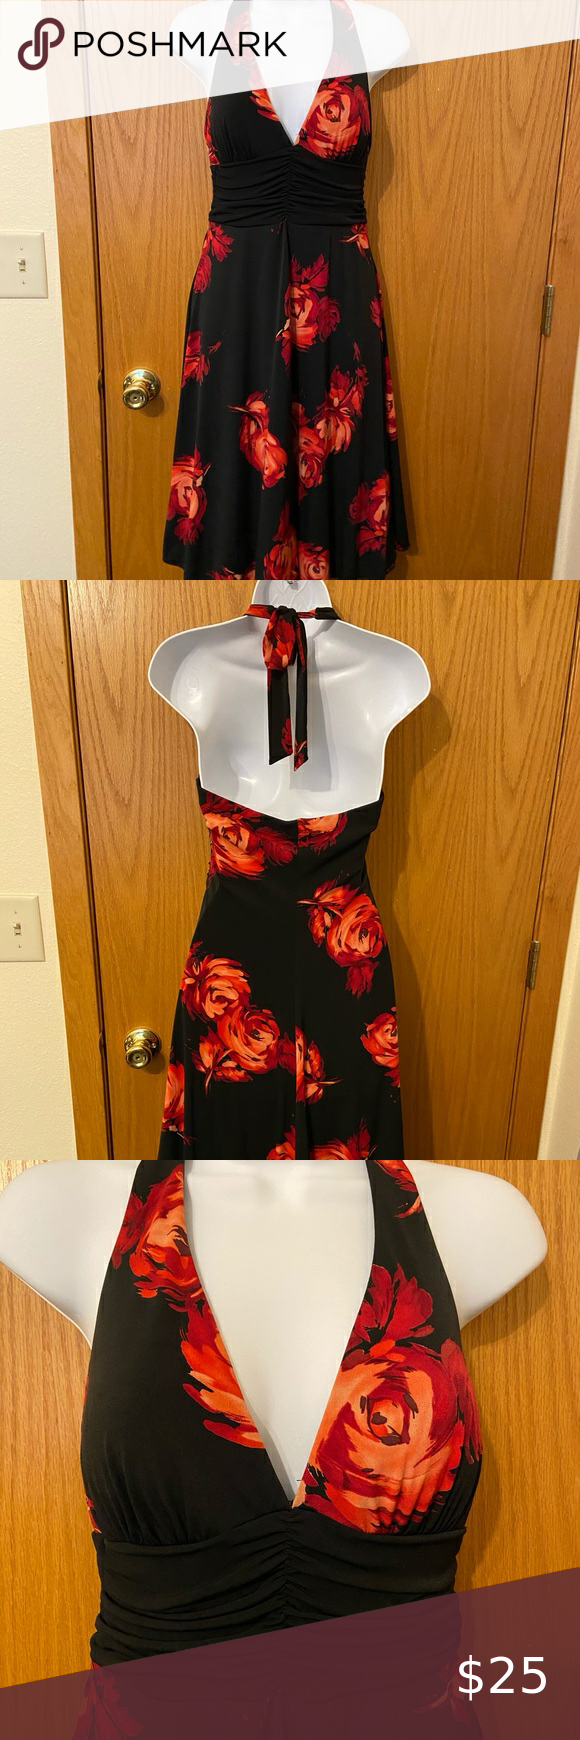 Black Halter Dress With Red Flowers Size Medium Black Halter Dress Dresses Halter Dress [ 1740 x 580 Pixel ]